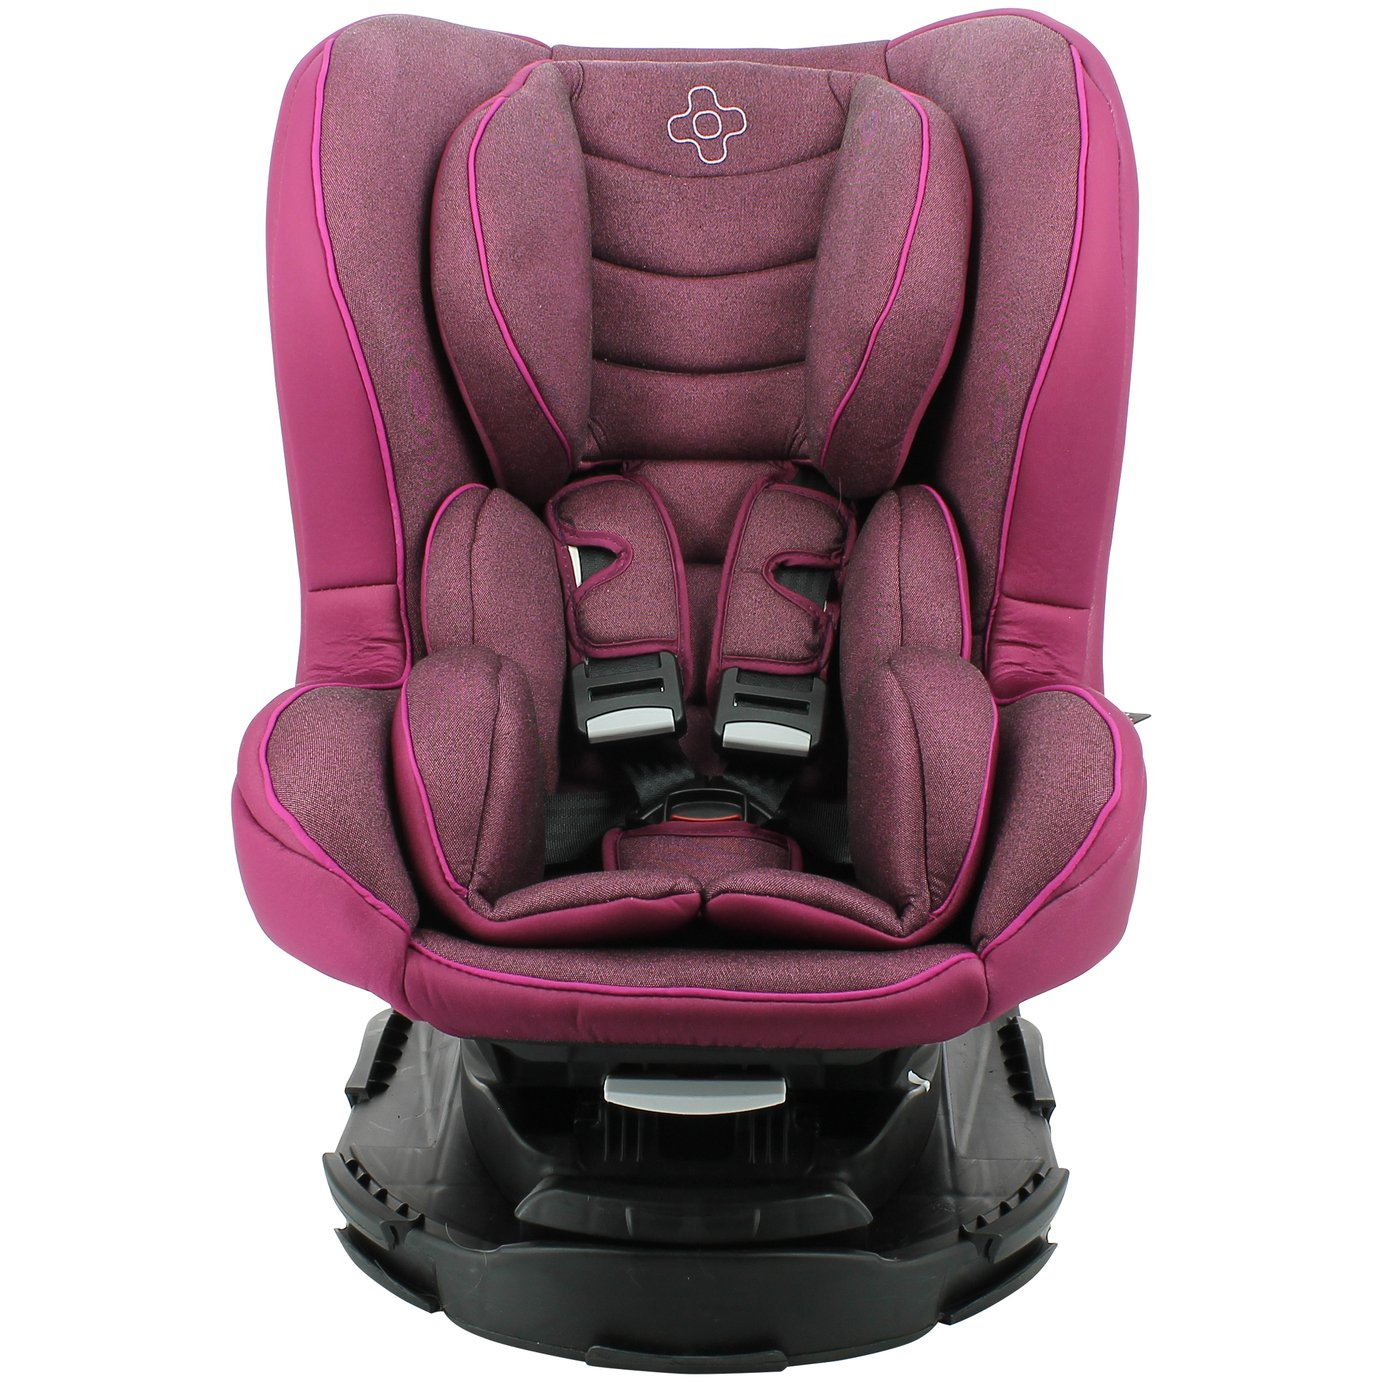 Migo Titan Platimun Groseille Group 0+/1 Car Seat - Plum